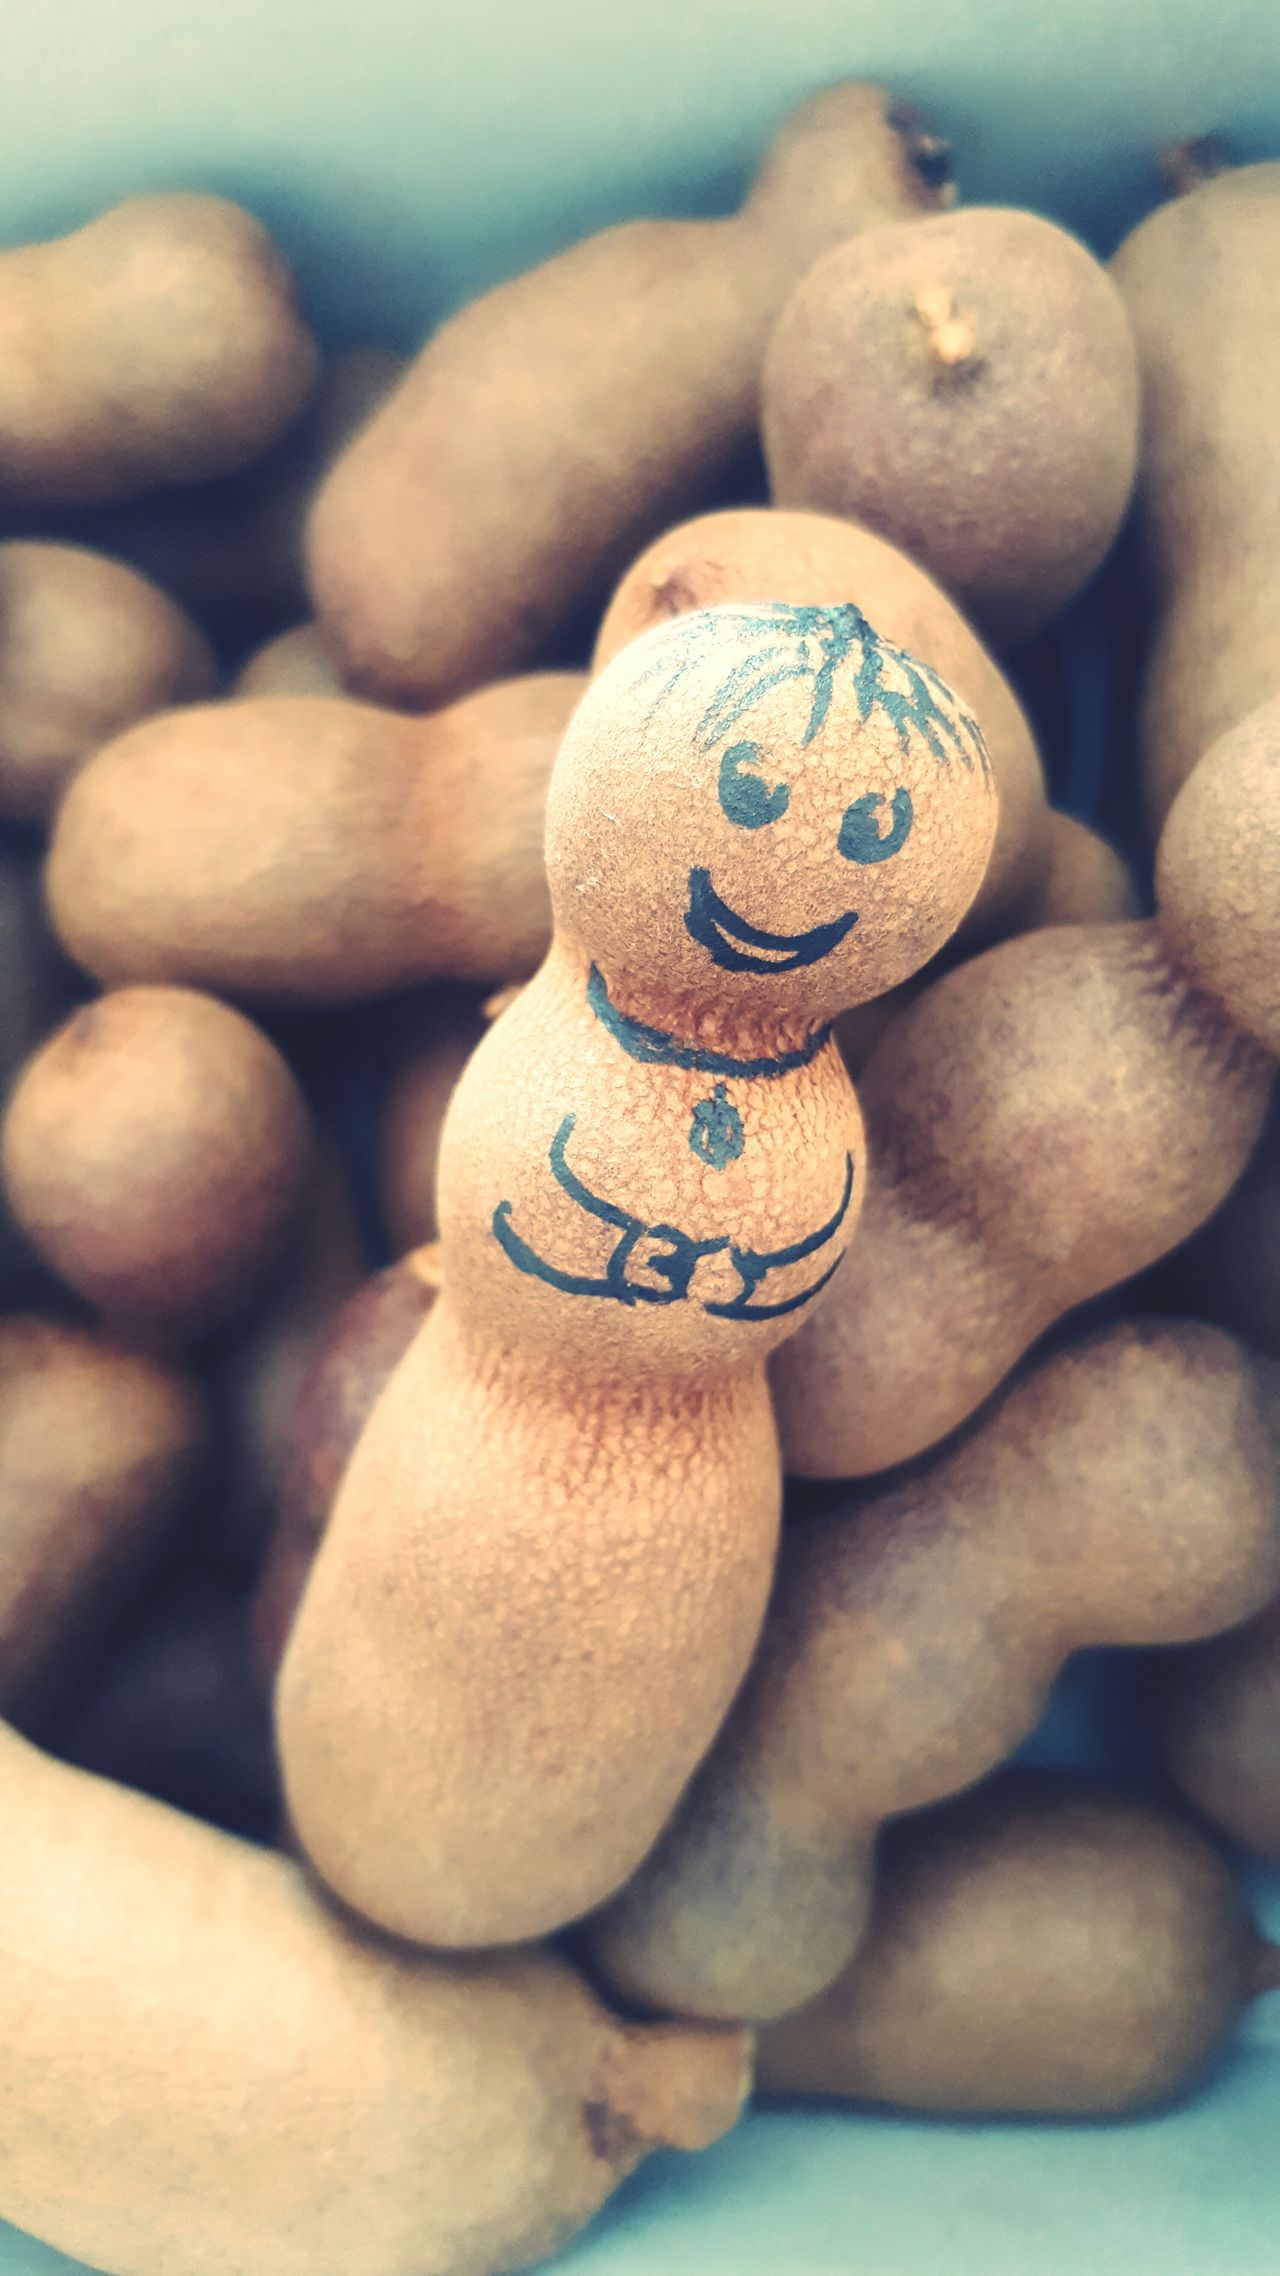 Close-up Food Human Body Part Human Hand One Person Adult People Outdoors Day Cultures Sweet Tamarind Exotic Fruits